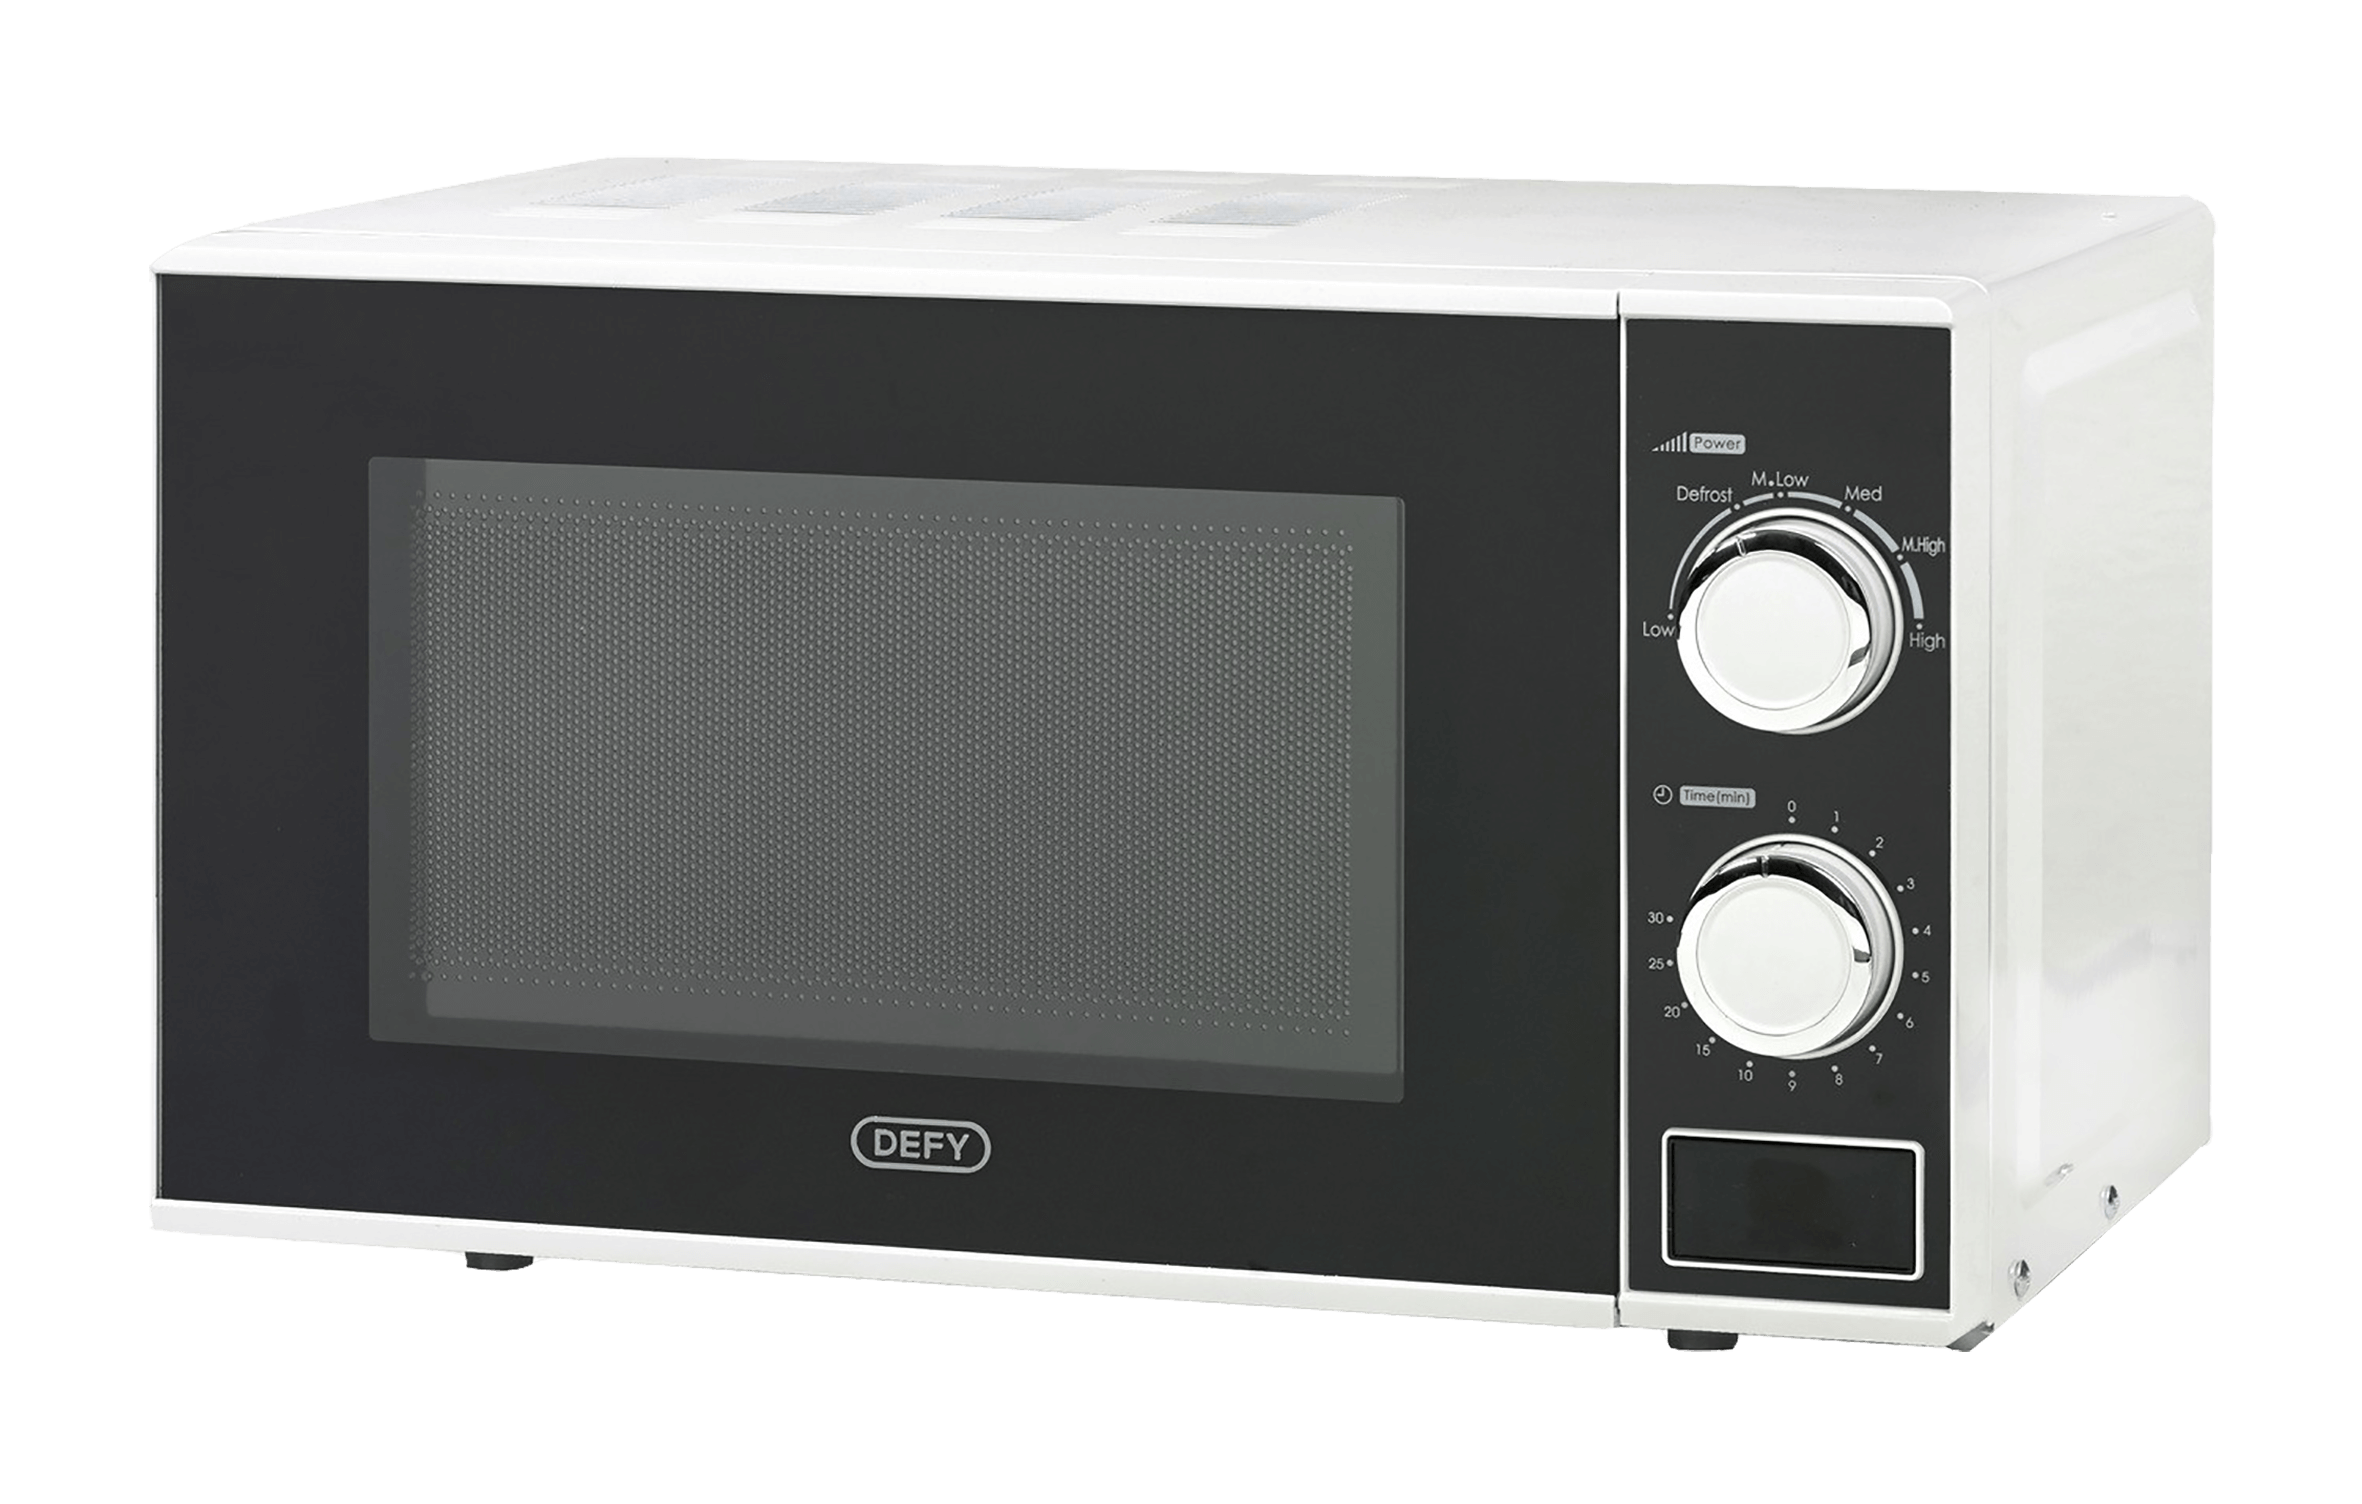 Defy Microwave Oven Dmo367 Newappliances